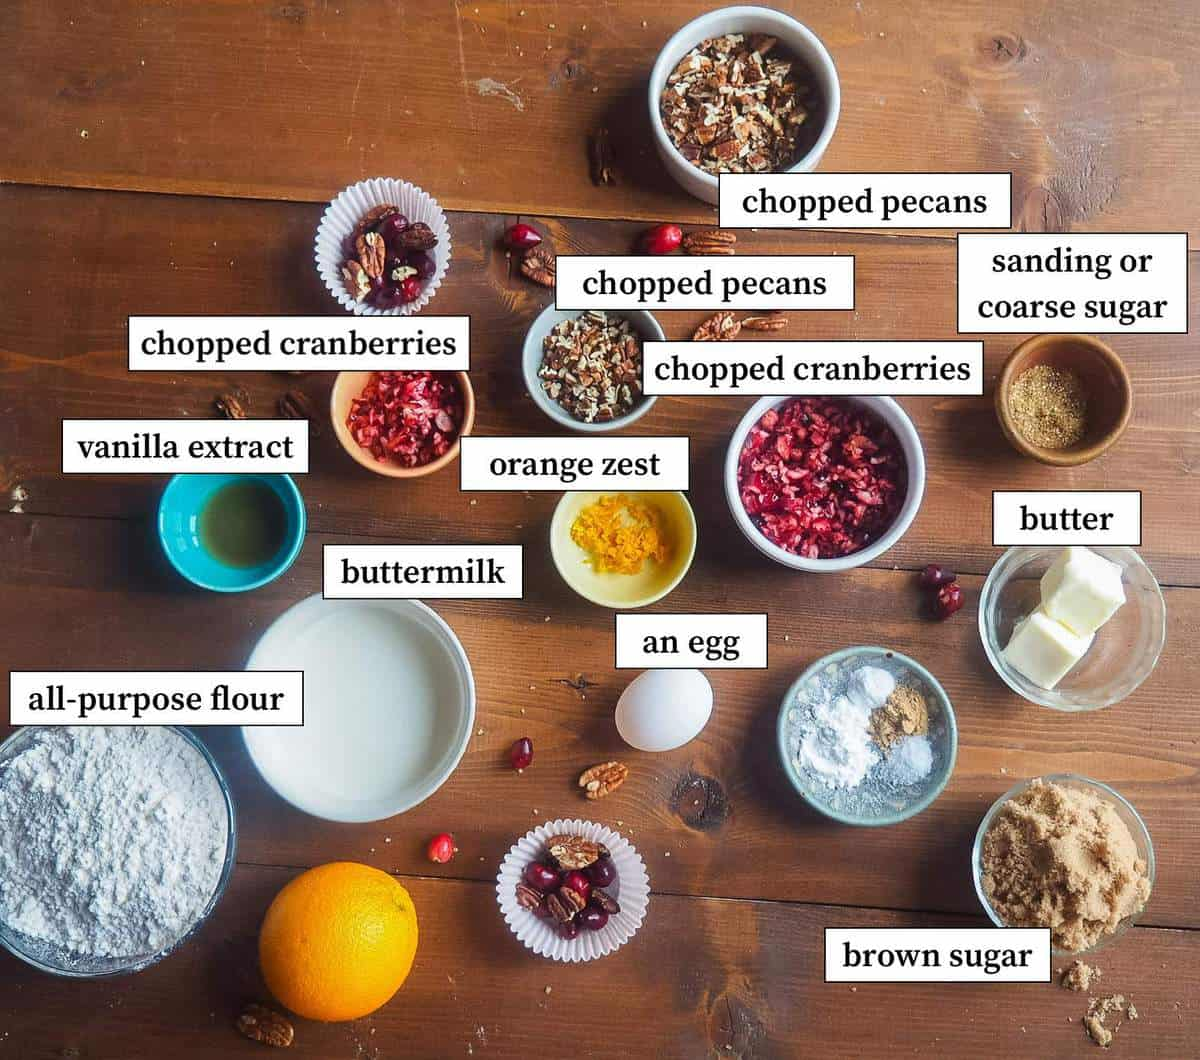 The ingredients in cranberry orange and pecan muffins laid out and labeled.